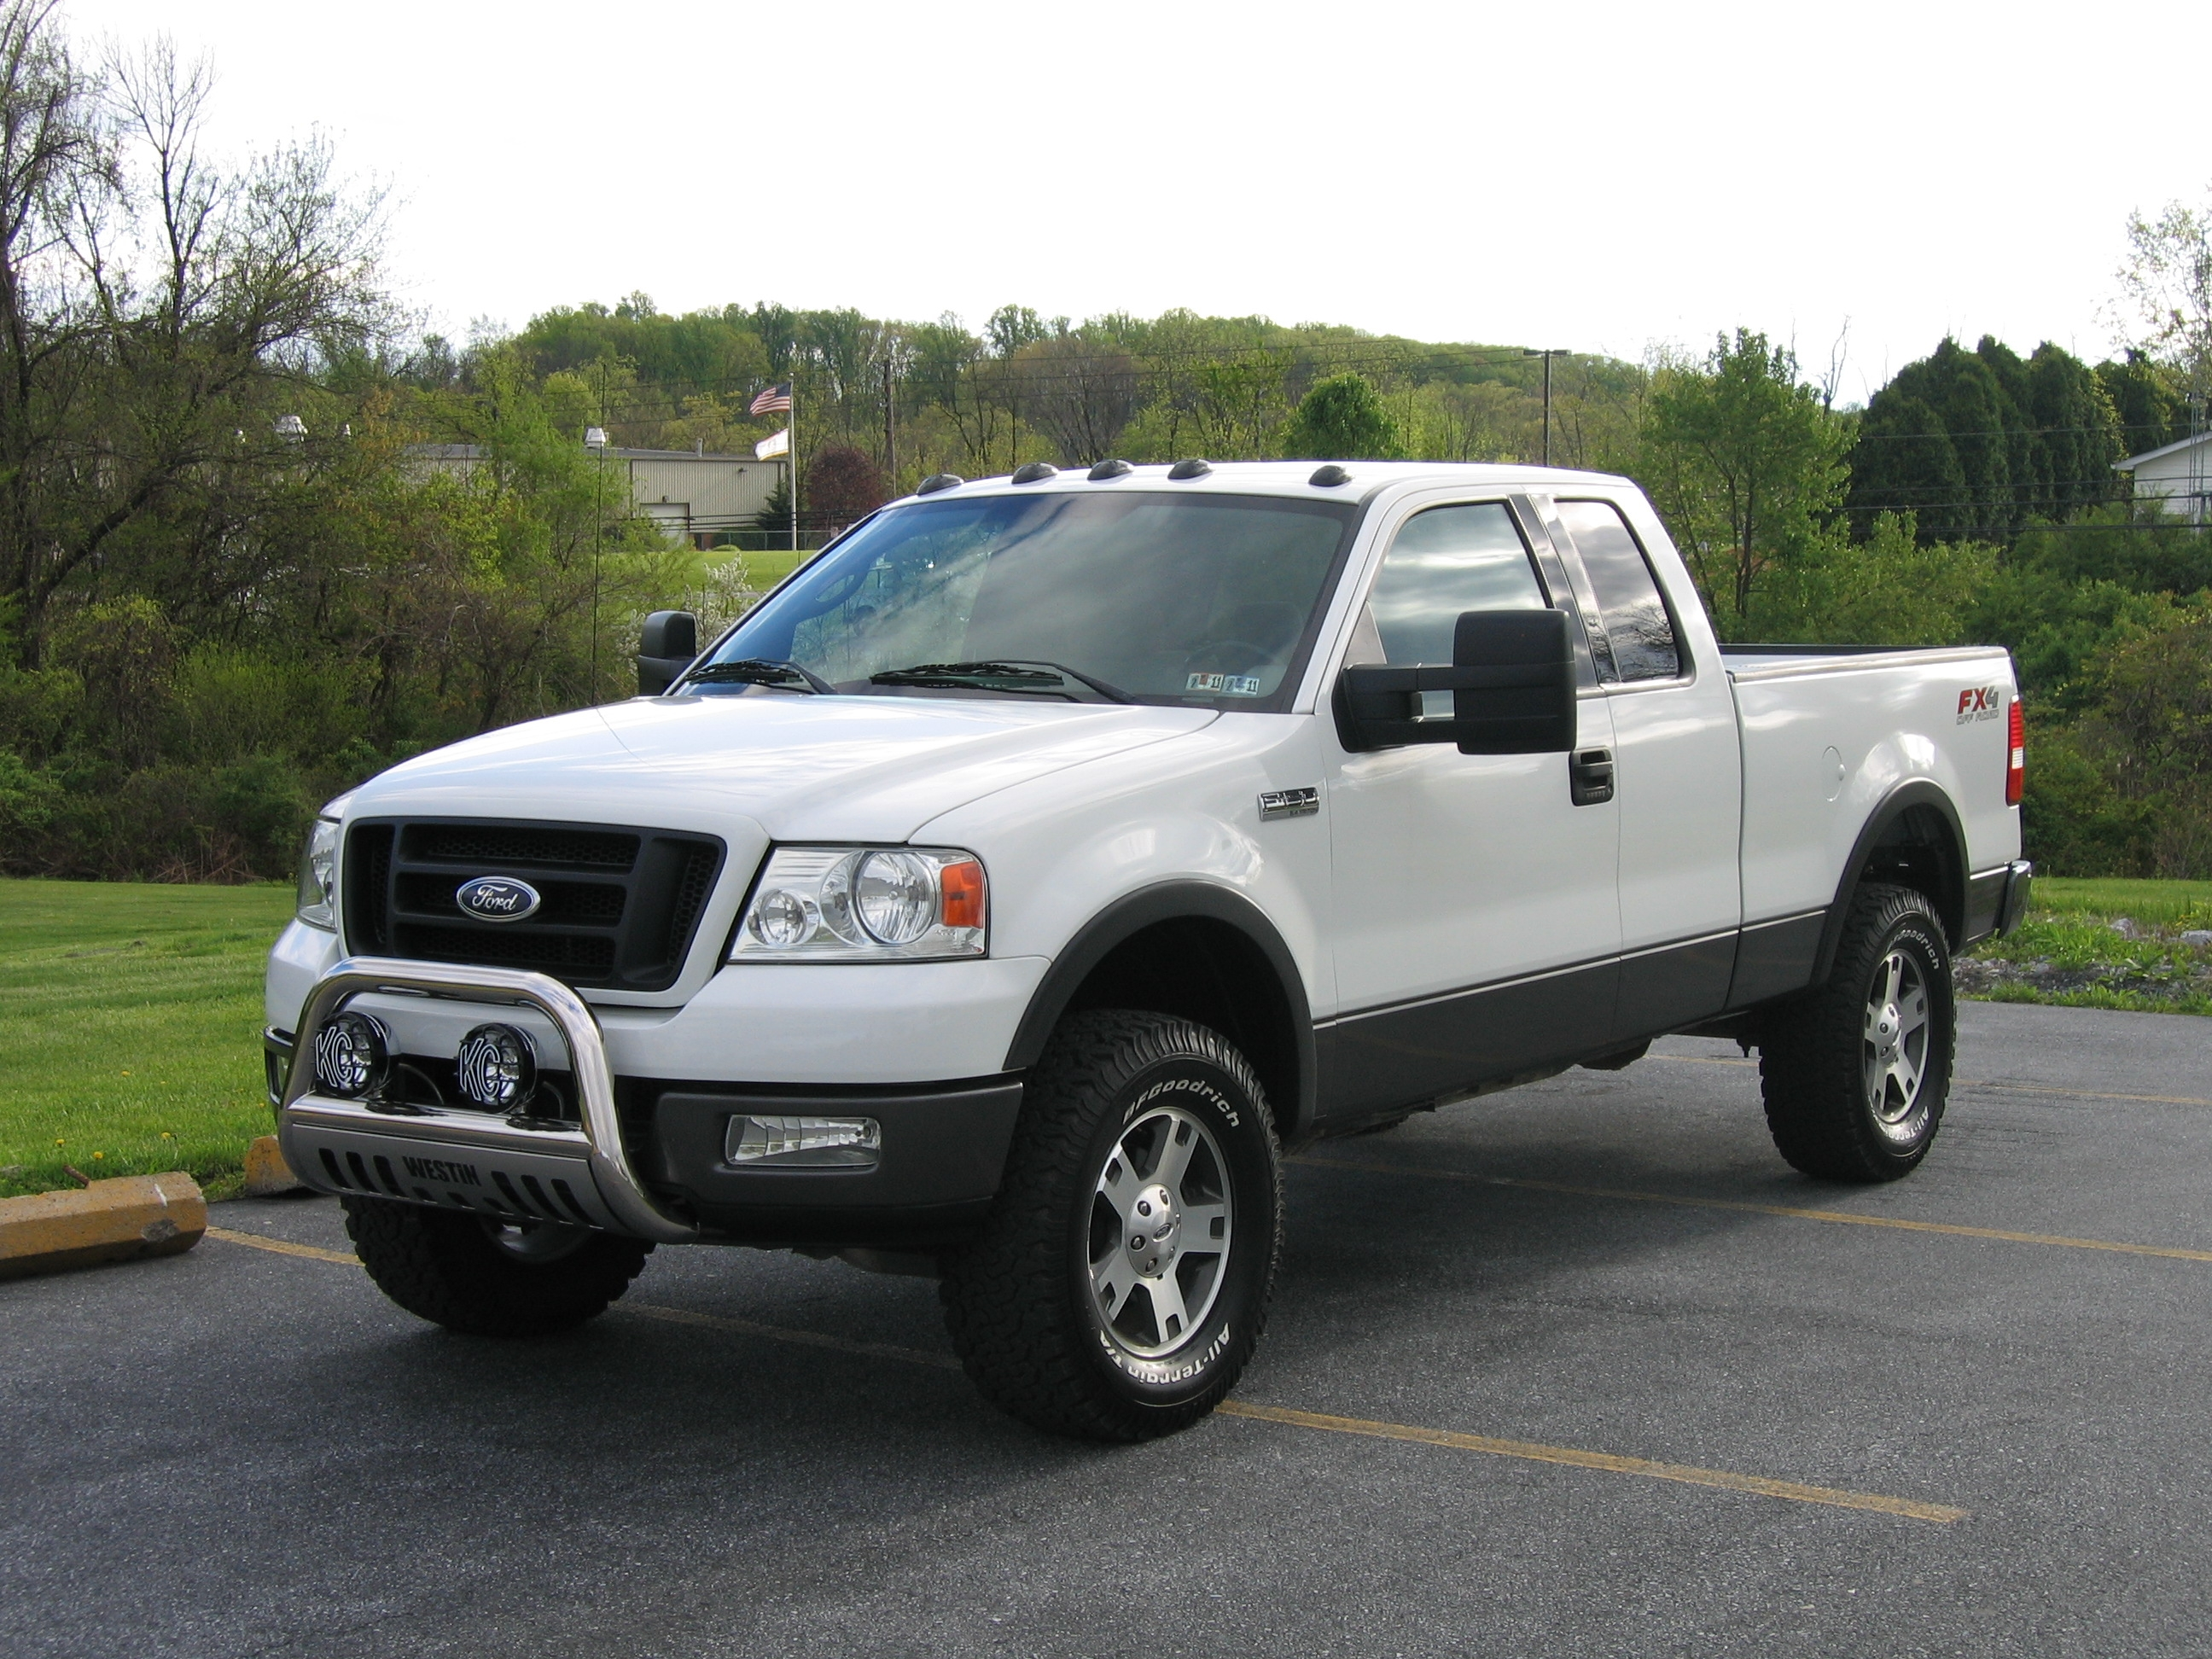 1sheltie 2004 Ford F150 Super Cab Specs, Photos ...